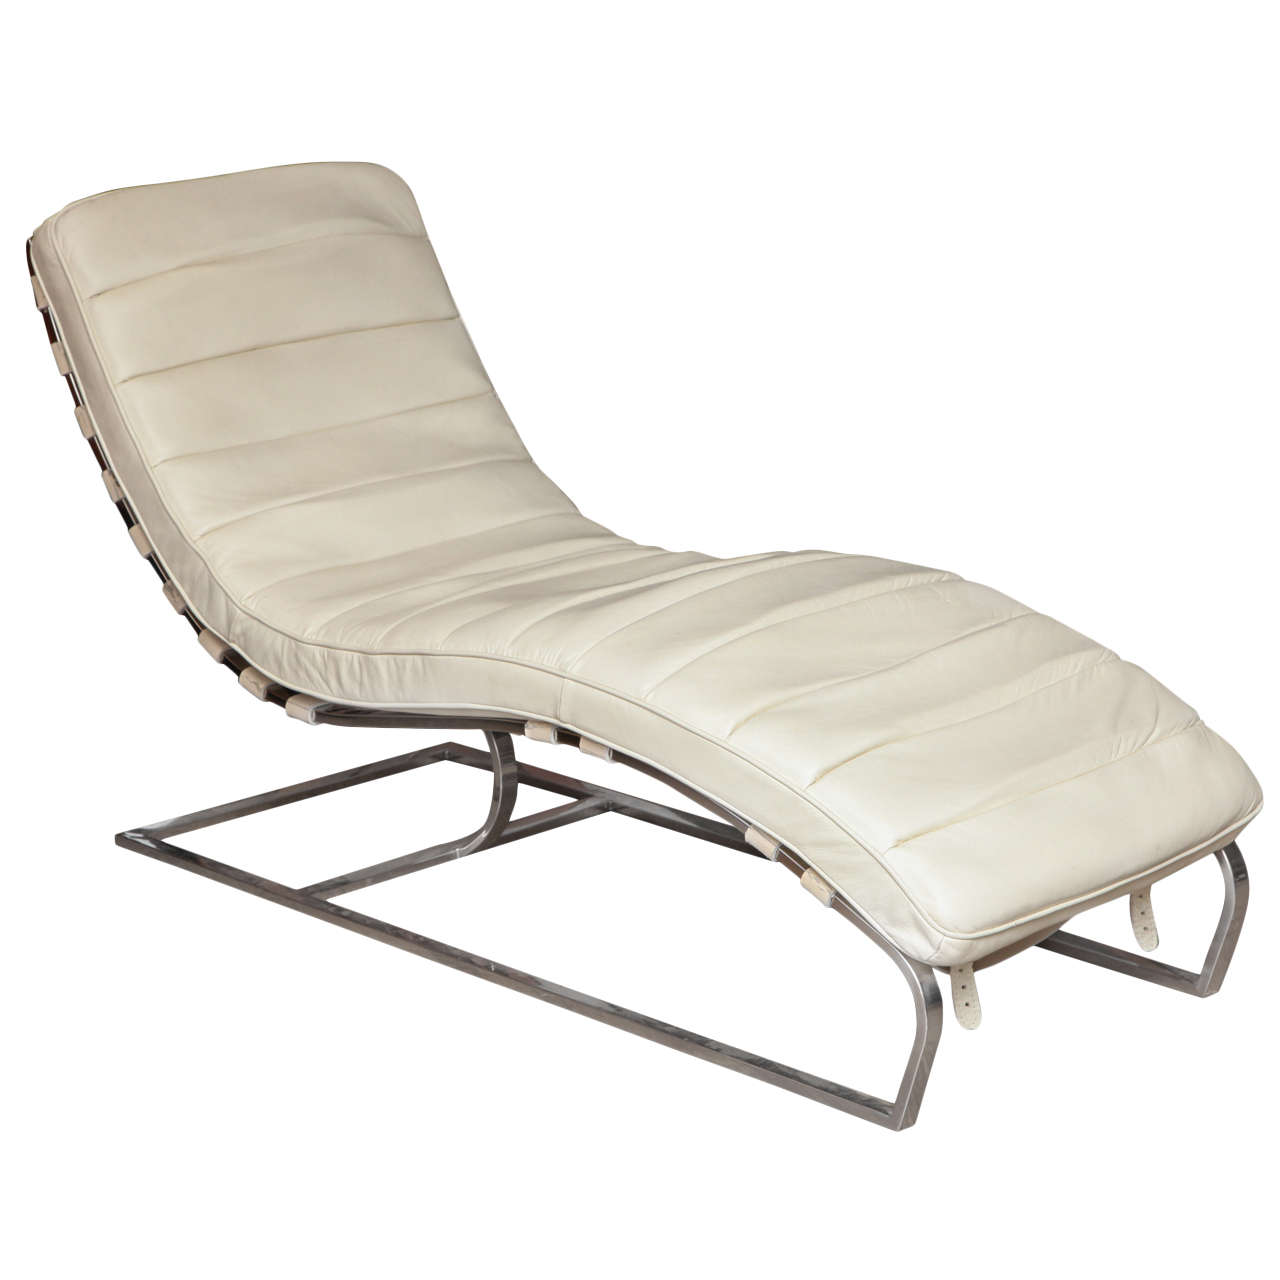 White leather chaises longue at 1stdibs for Chaise longue leather